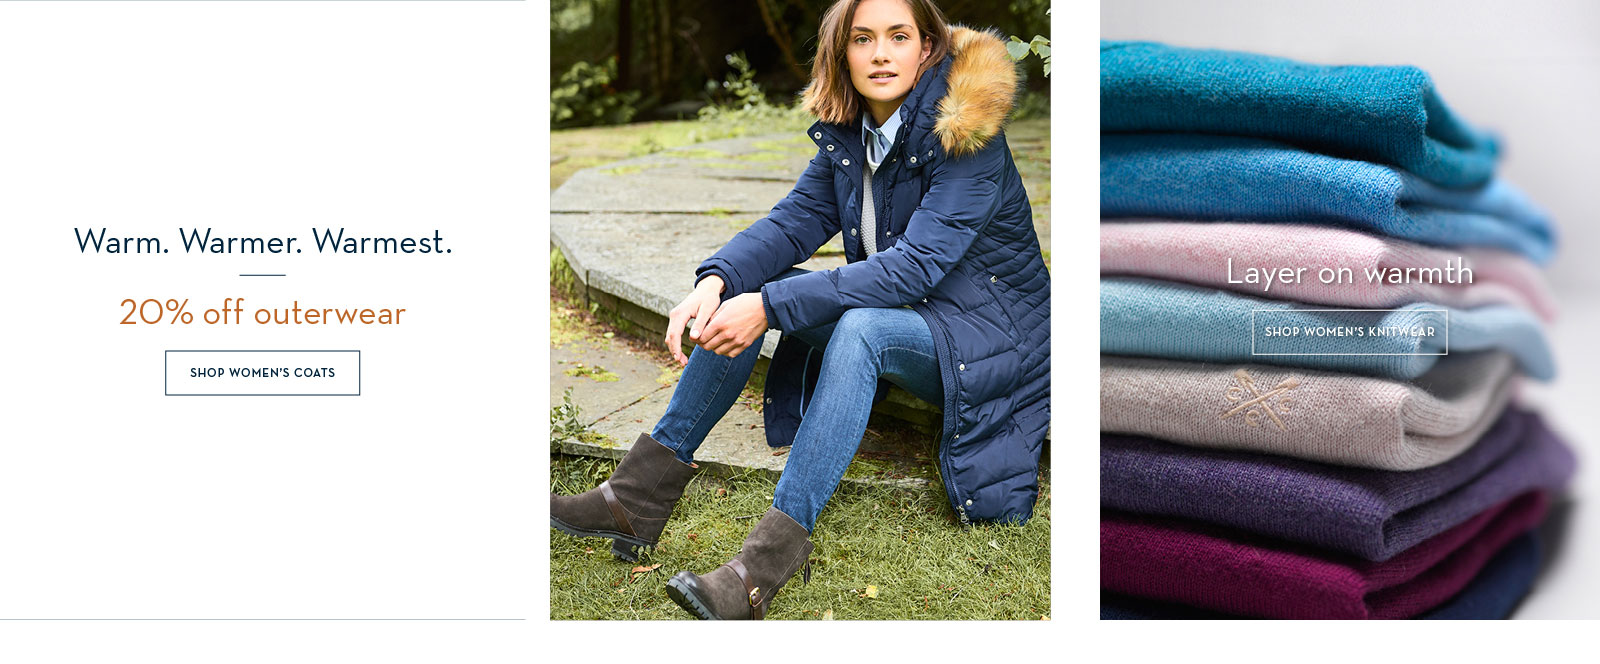 20% off coats and jackets